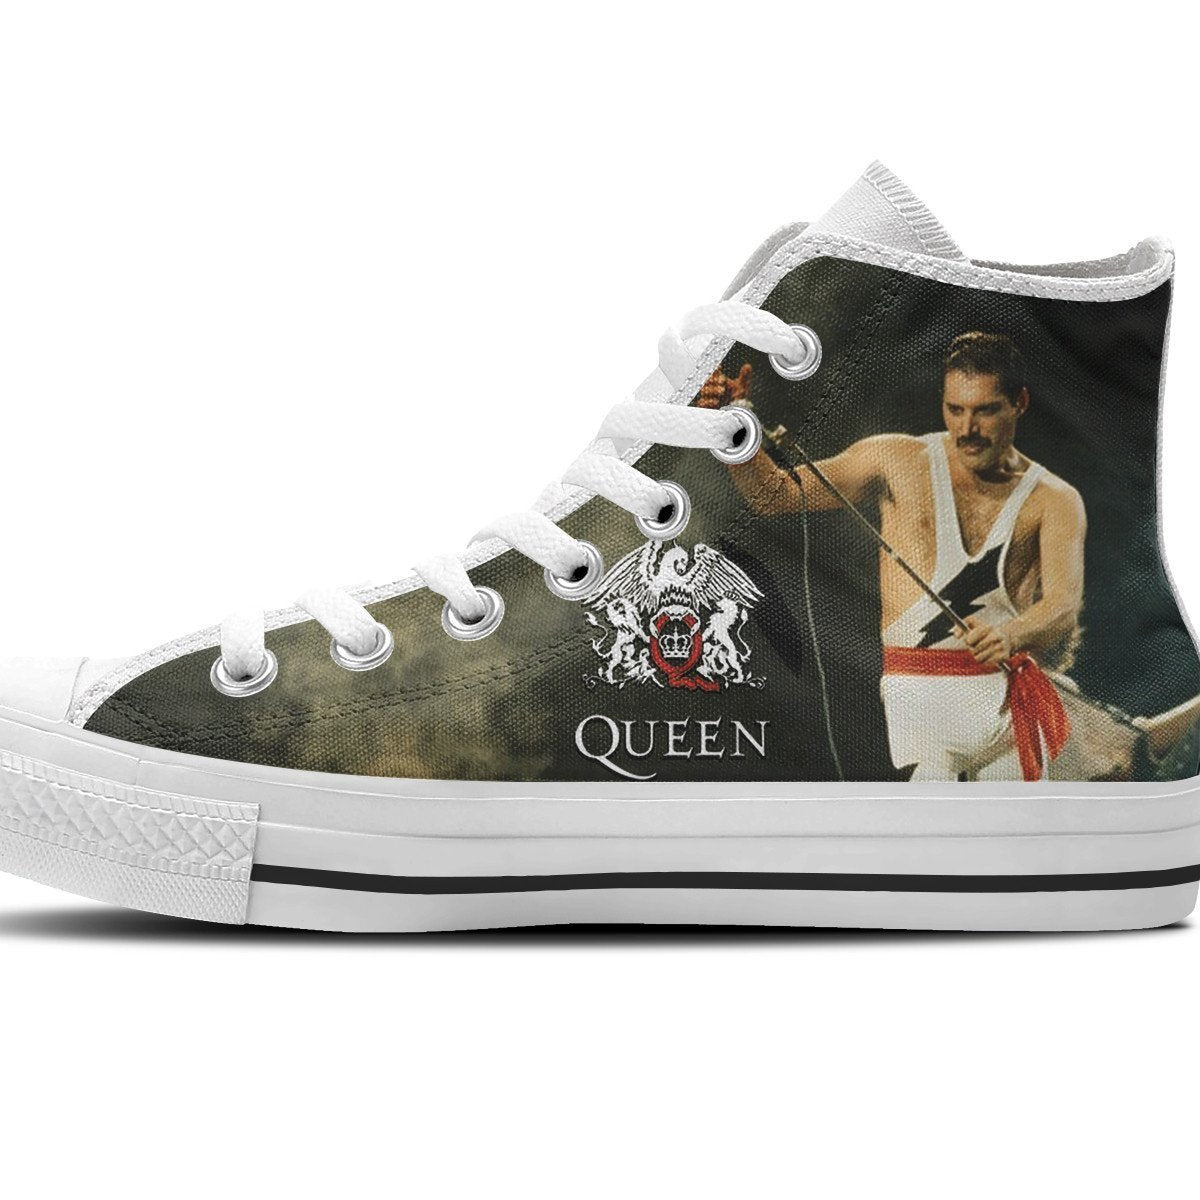 queen band ladies high top sneakers